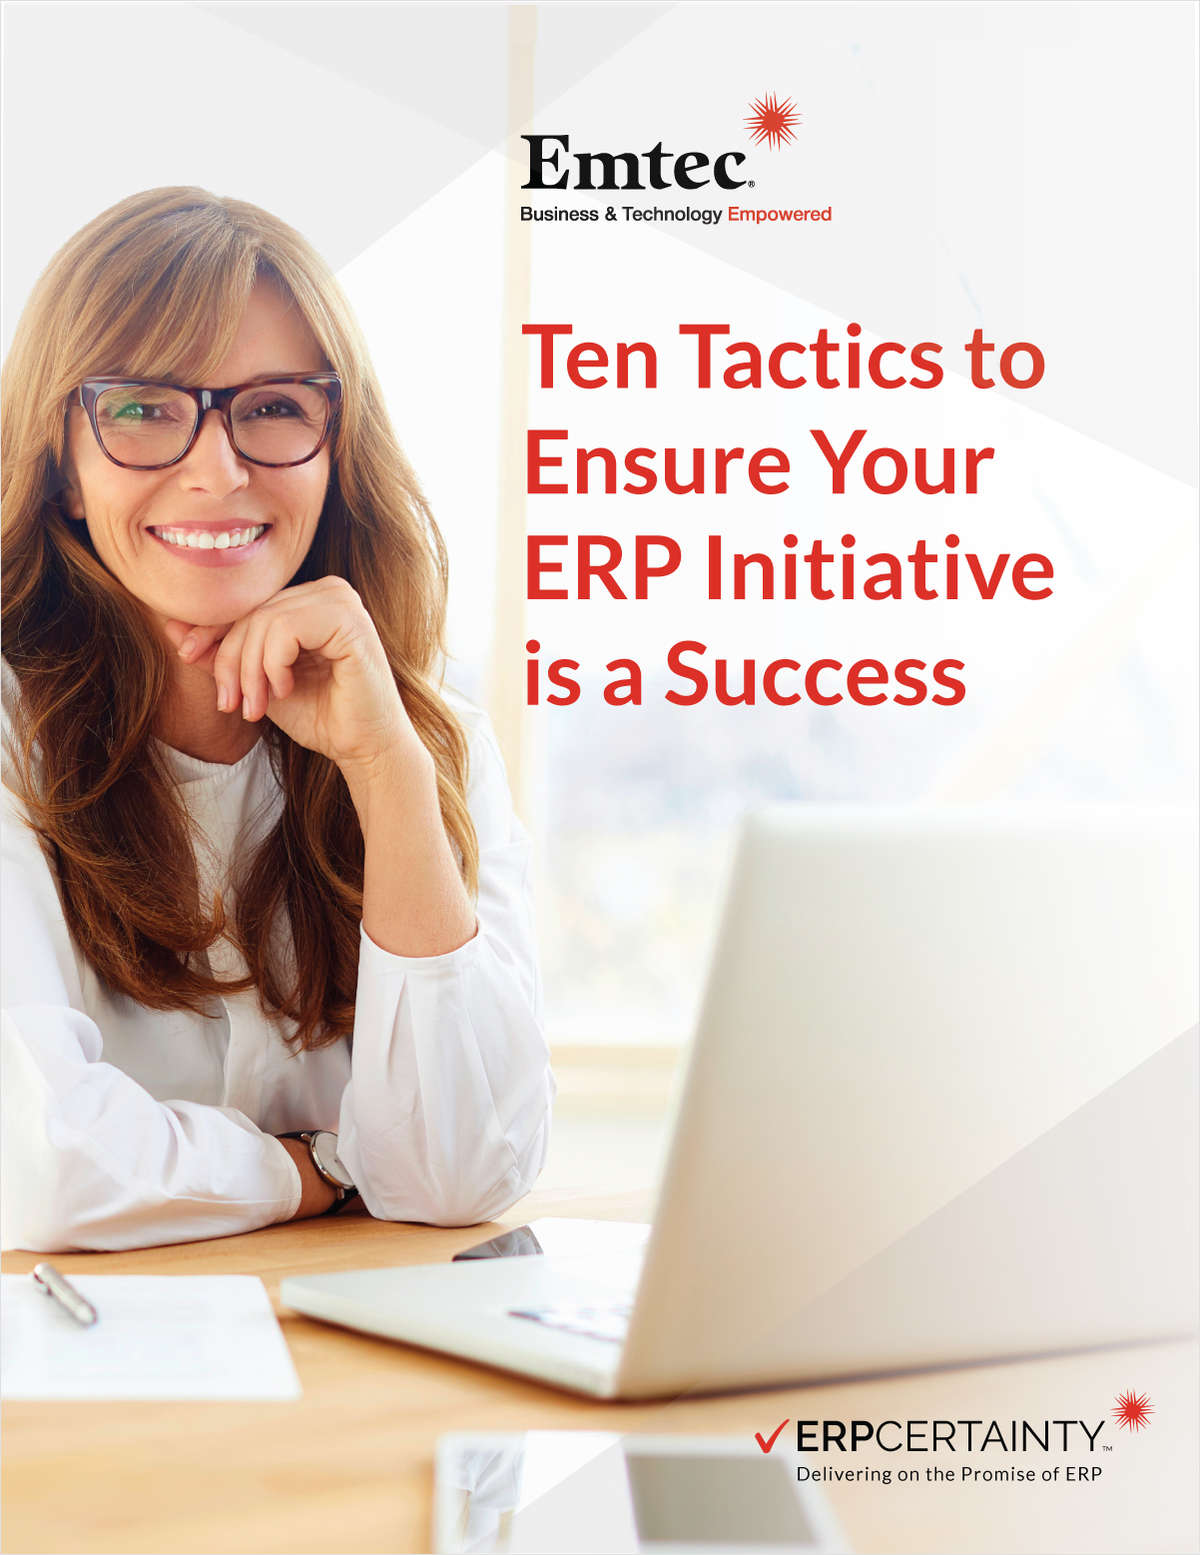 Ten Tactics to Ensure Your ERP Initiative is a Success